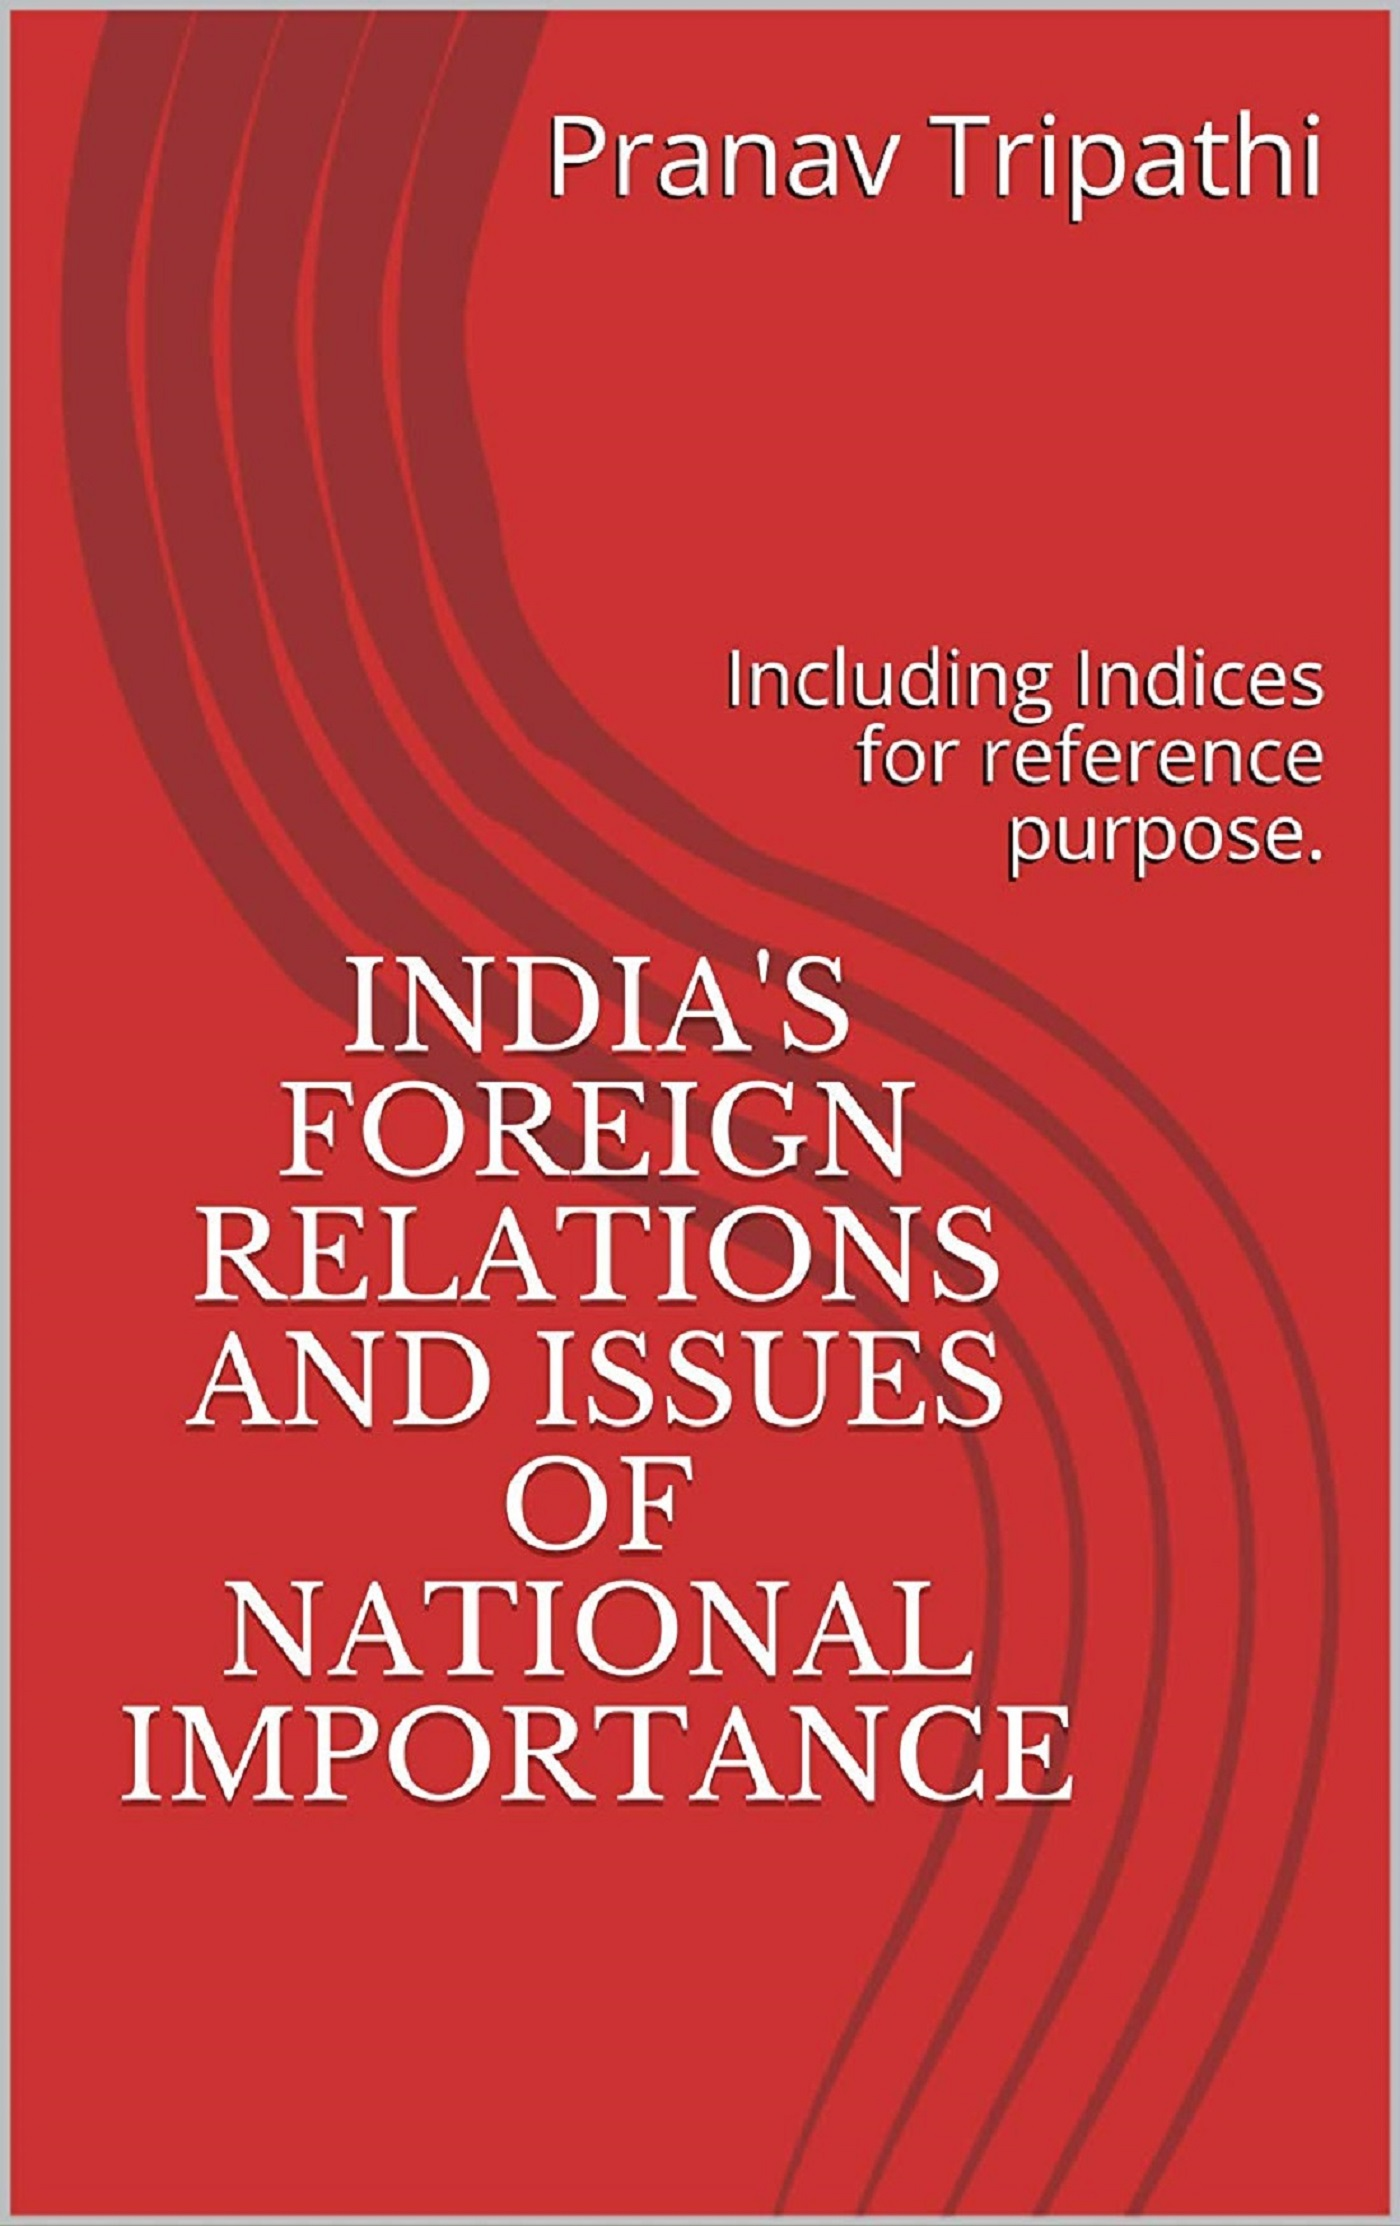 India's Foreign Relations and Issues of National Importance, an Ebook by  PRANAV TRIPATHI